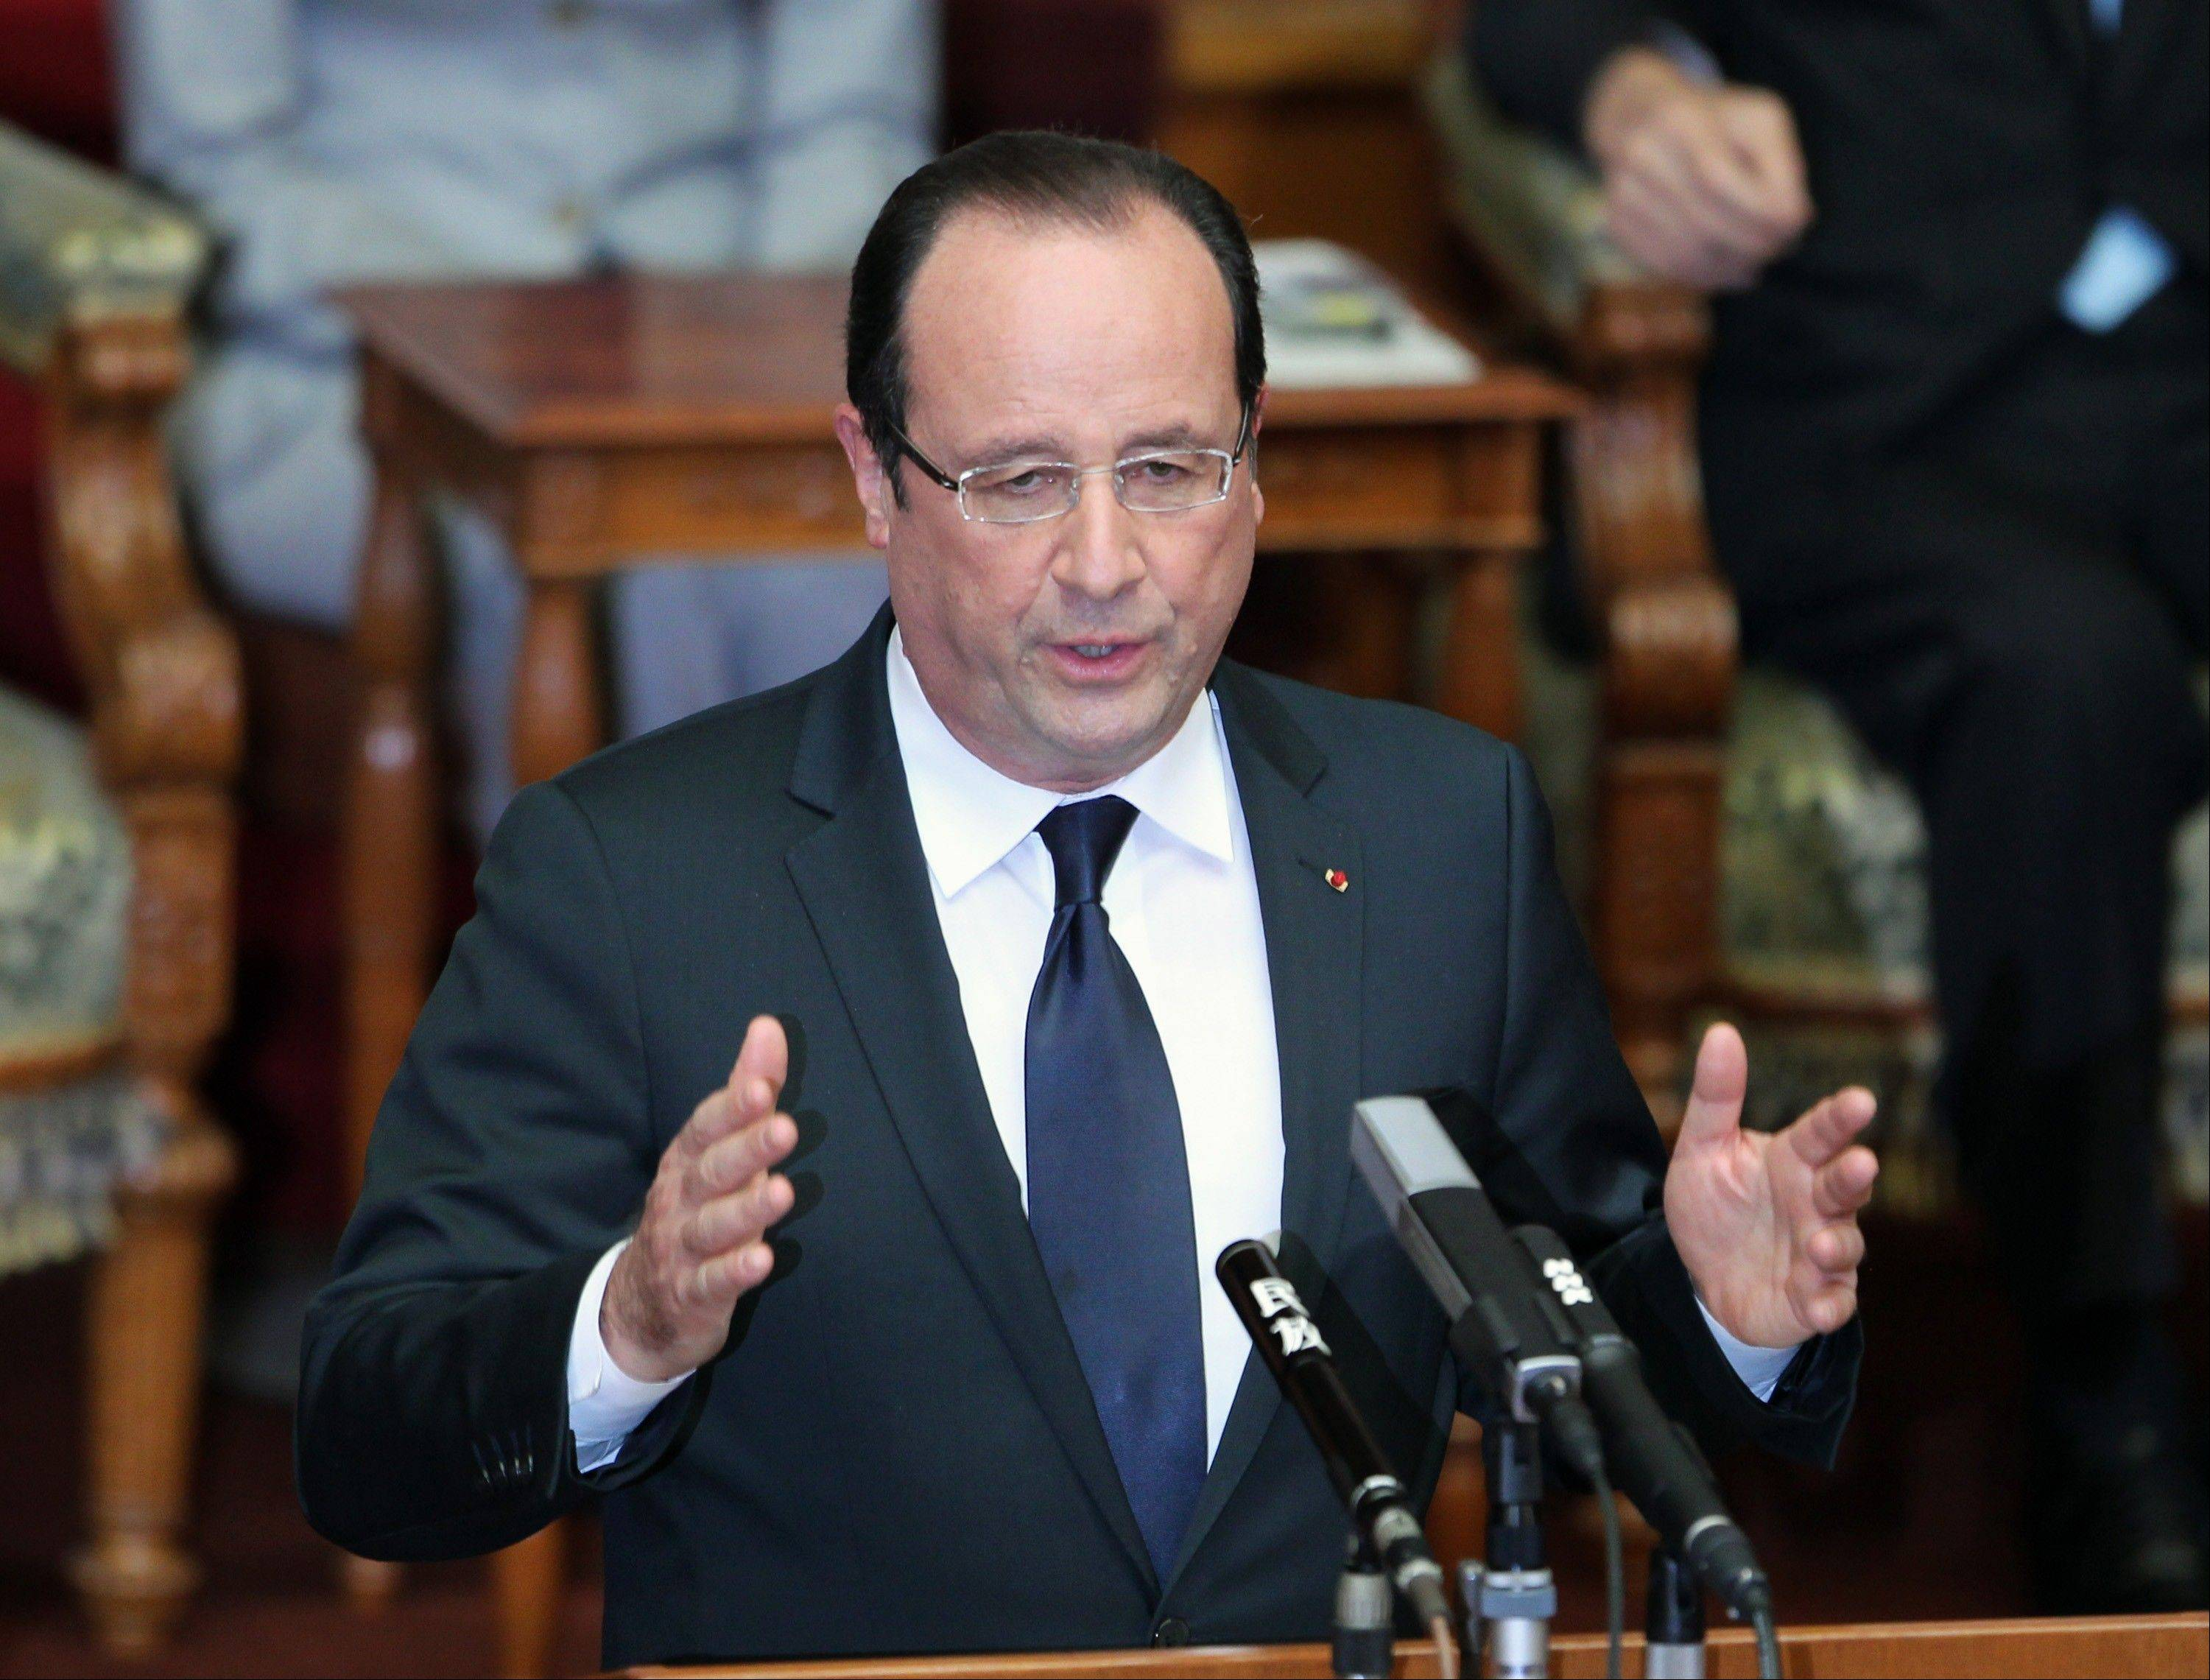 Francois Hollande, France's president, delivers a speech Friday in the upper house of Parliament in Tokyo, Japan.